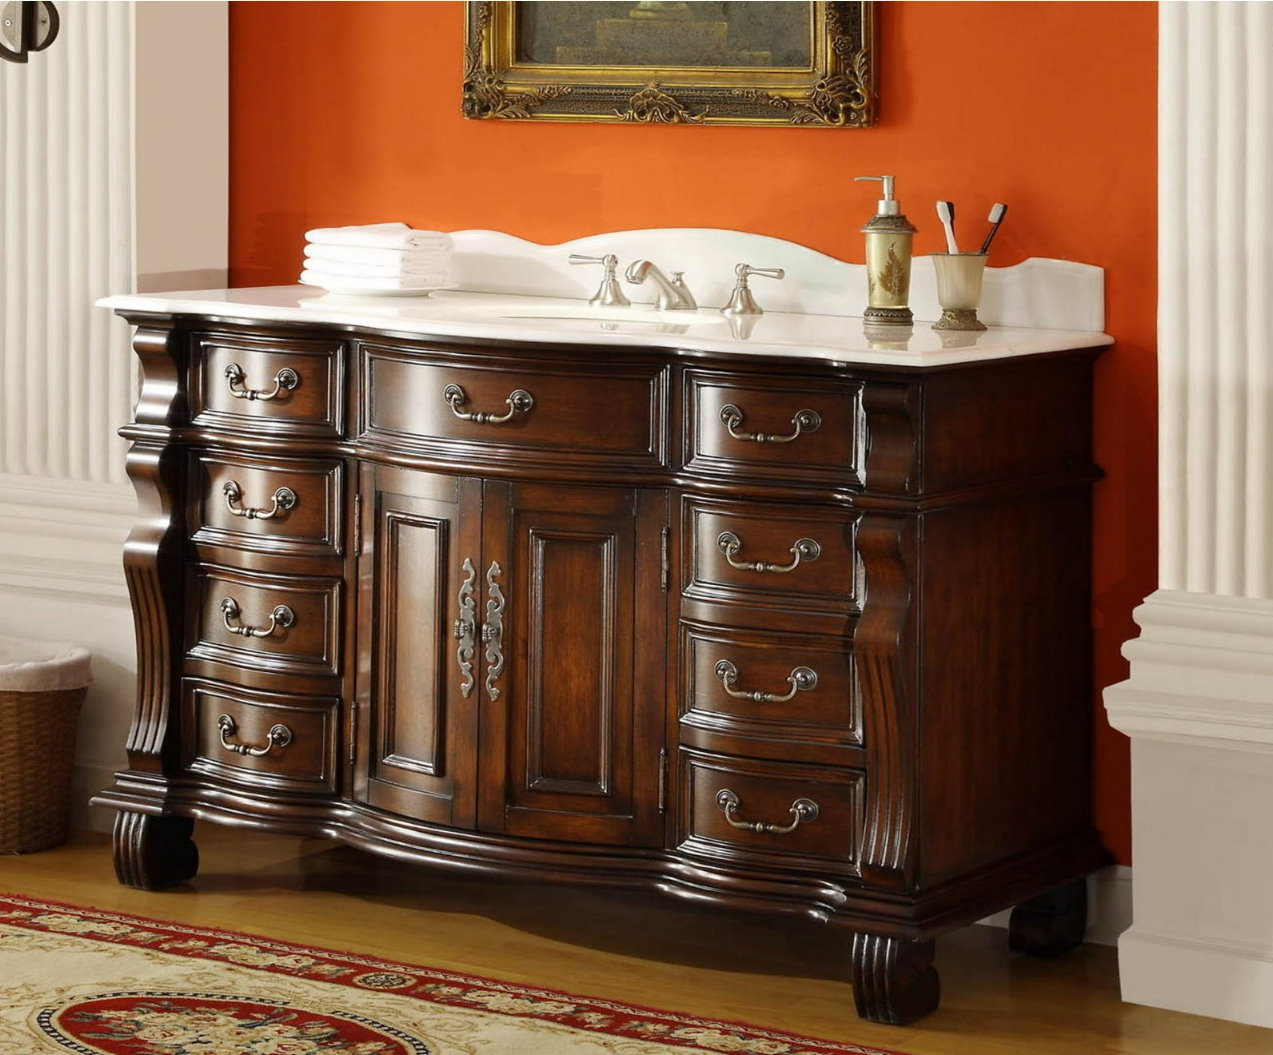 60 inch single sink bathroom vanity 8 drawers medium brown color 60 wx22 dx36 h cgd4437w60 60 in bathroom vanities with single sink